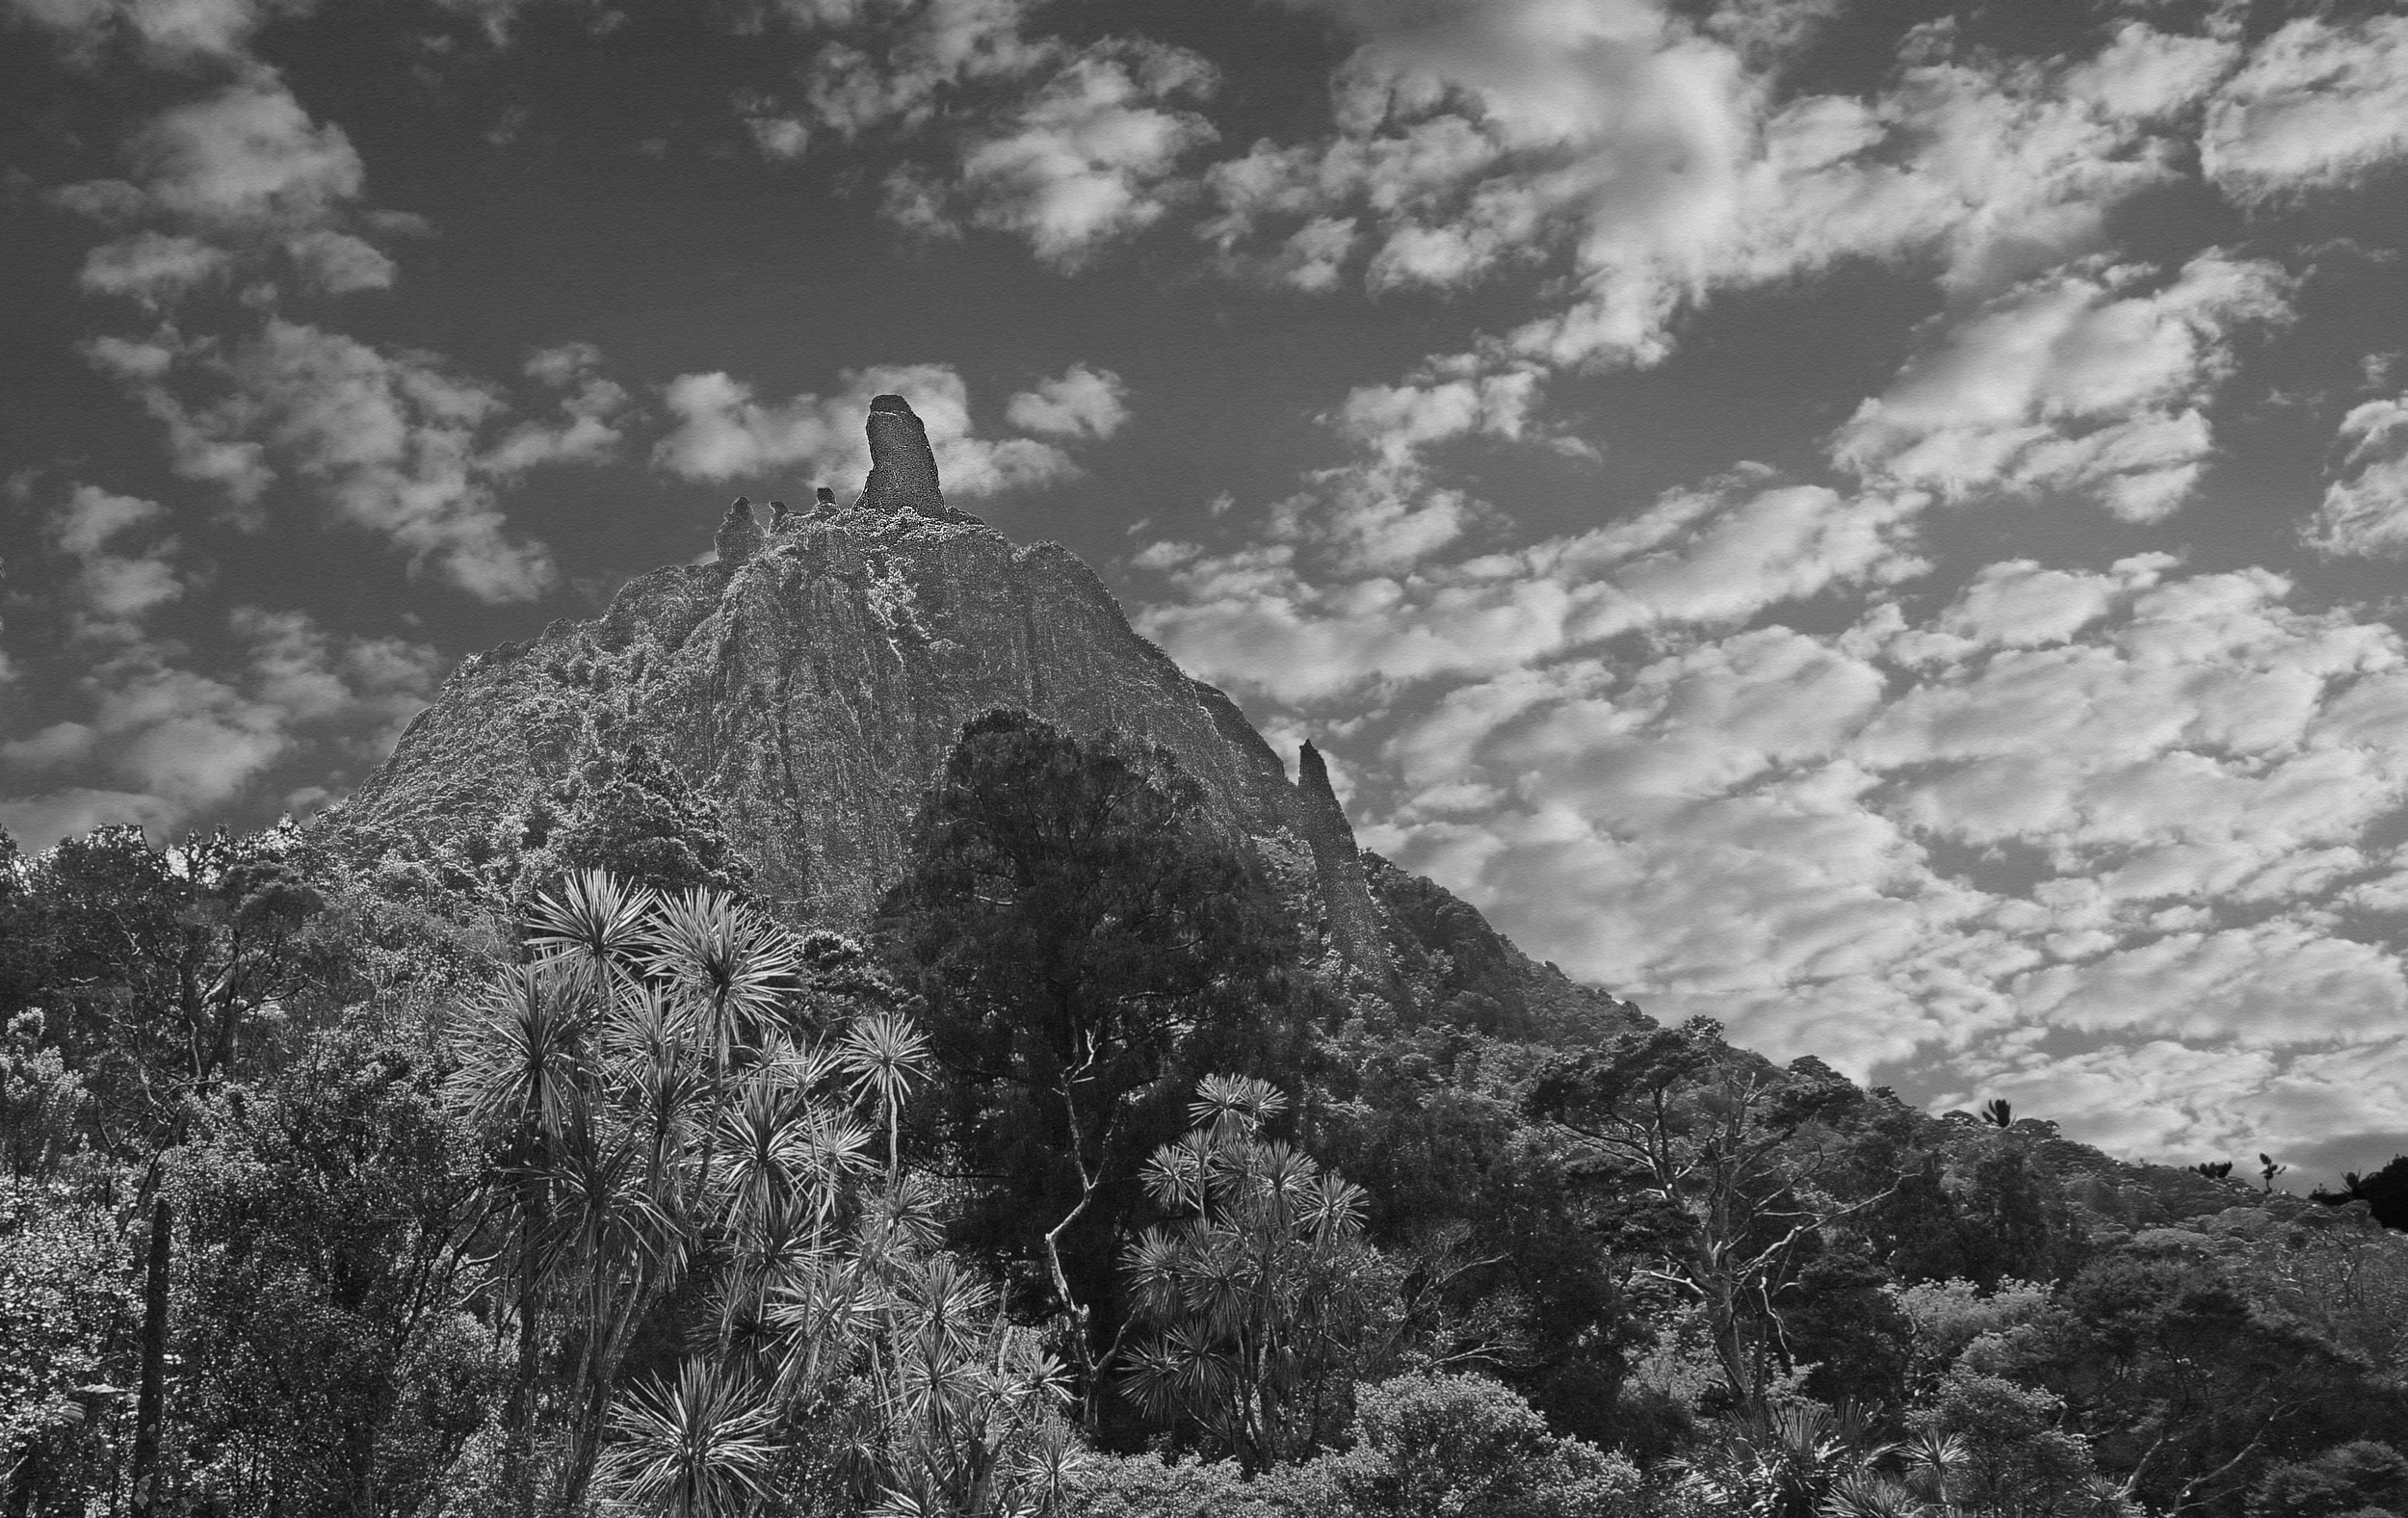 Black and white photography can add drama to a scene, such as this moody view of Mount Manaia in Northern New Zealand